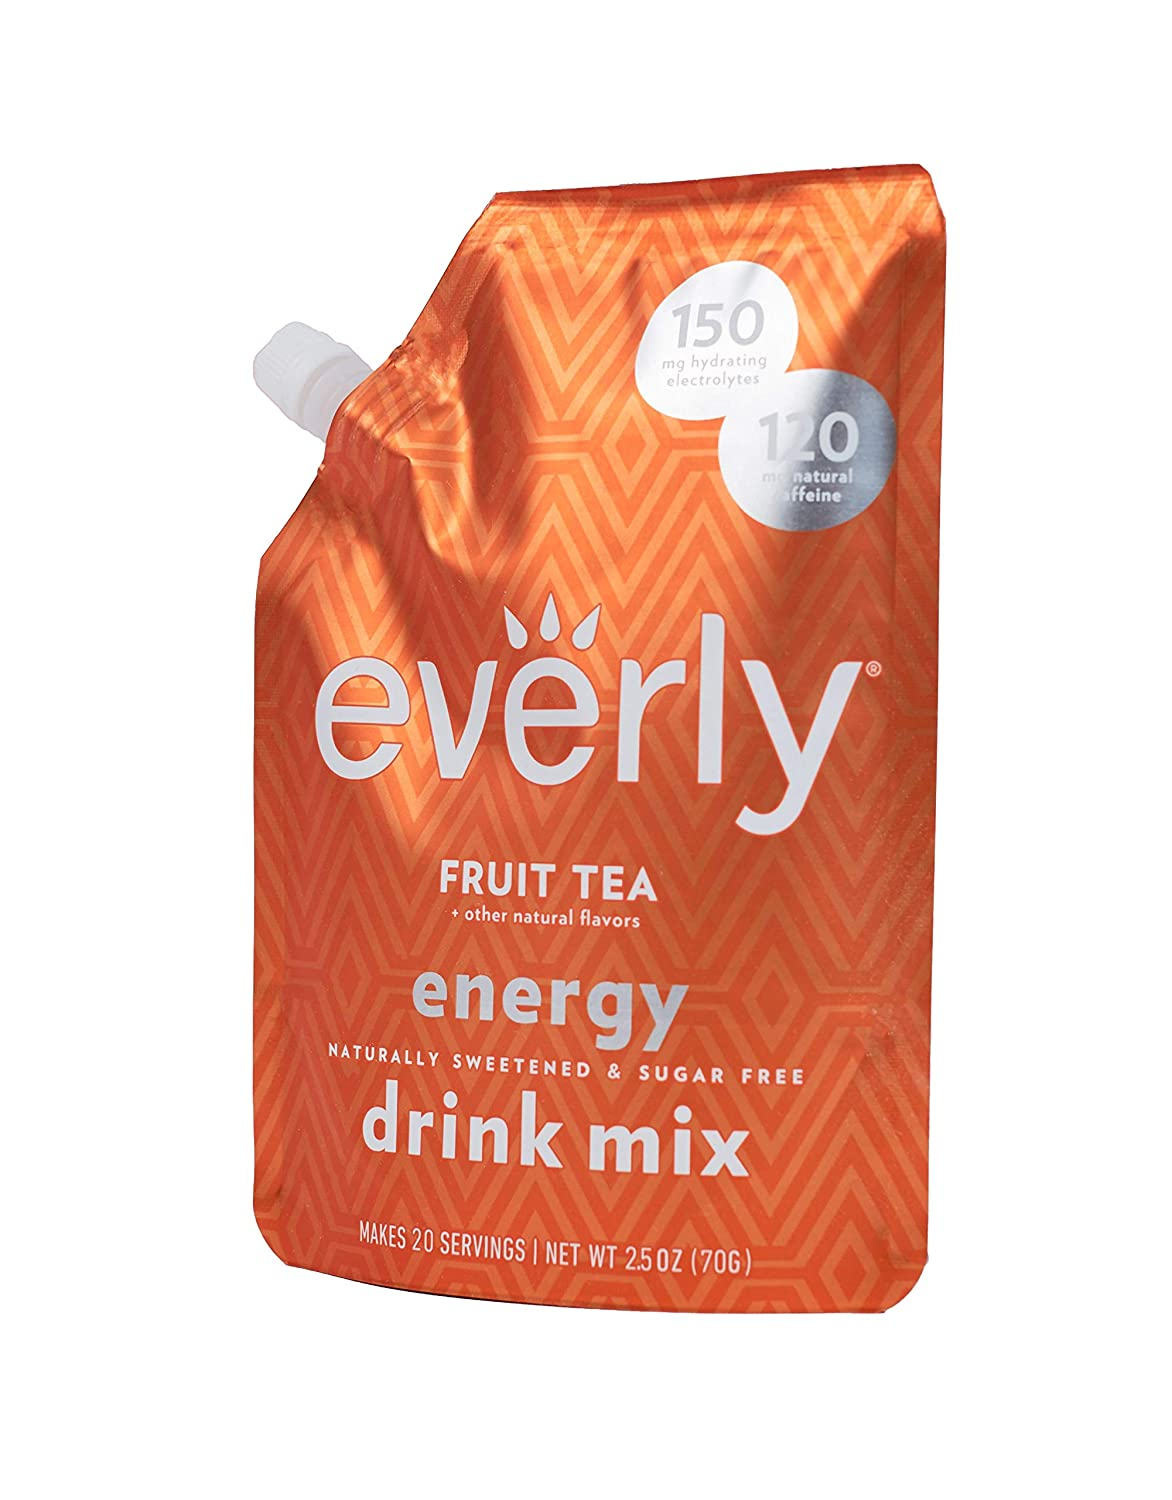 Everly Energy - Natural Energy Drink Mix Powder, Sugar Free, Natural Sweeteners, Organic Caffeine, Keto Diet, Water Flavoring & Enhancer - Pouch, 20 Servings (Fruit Tea)